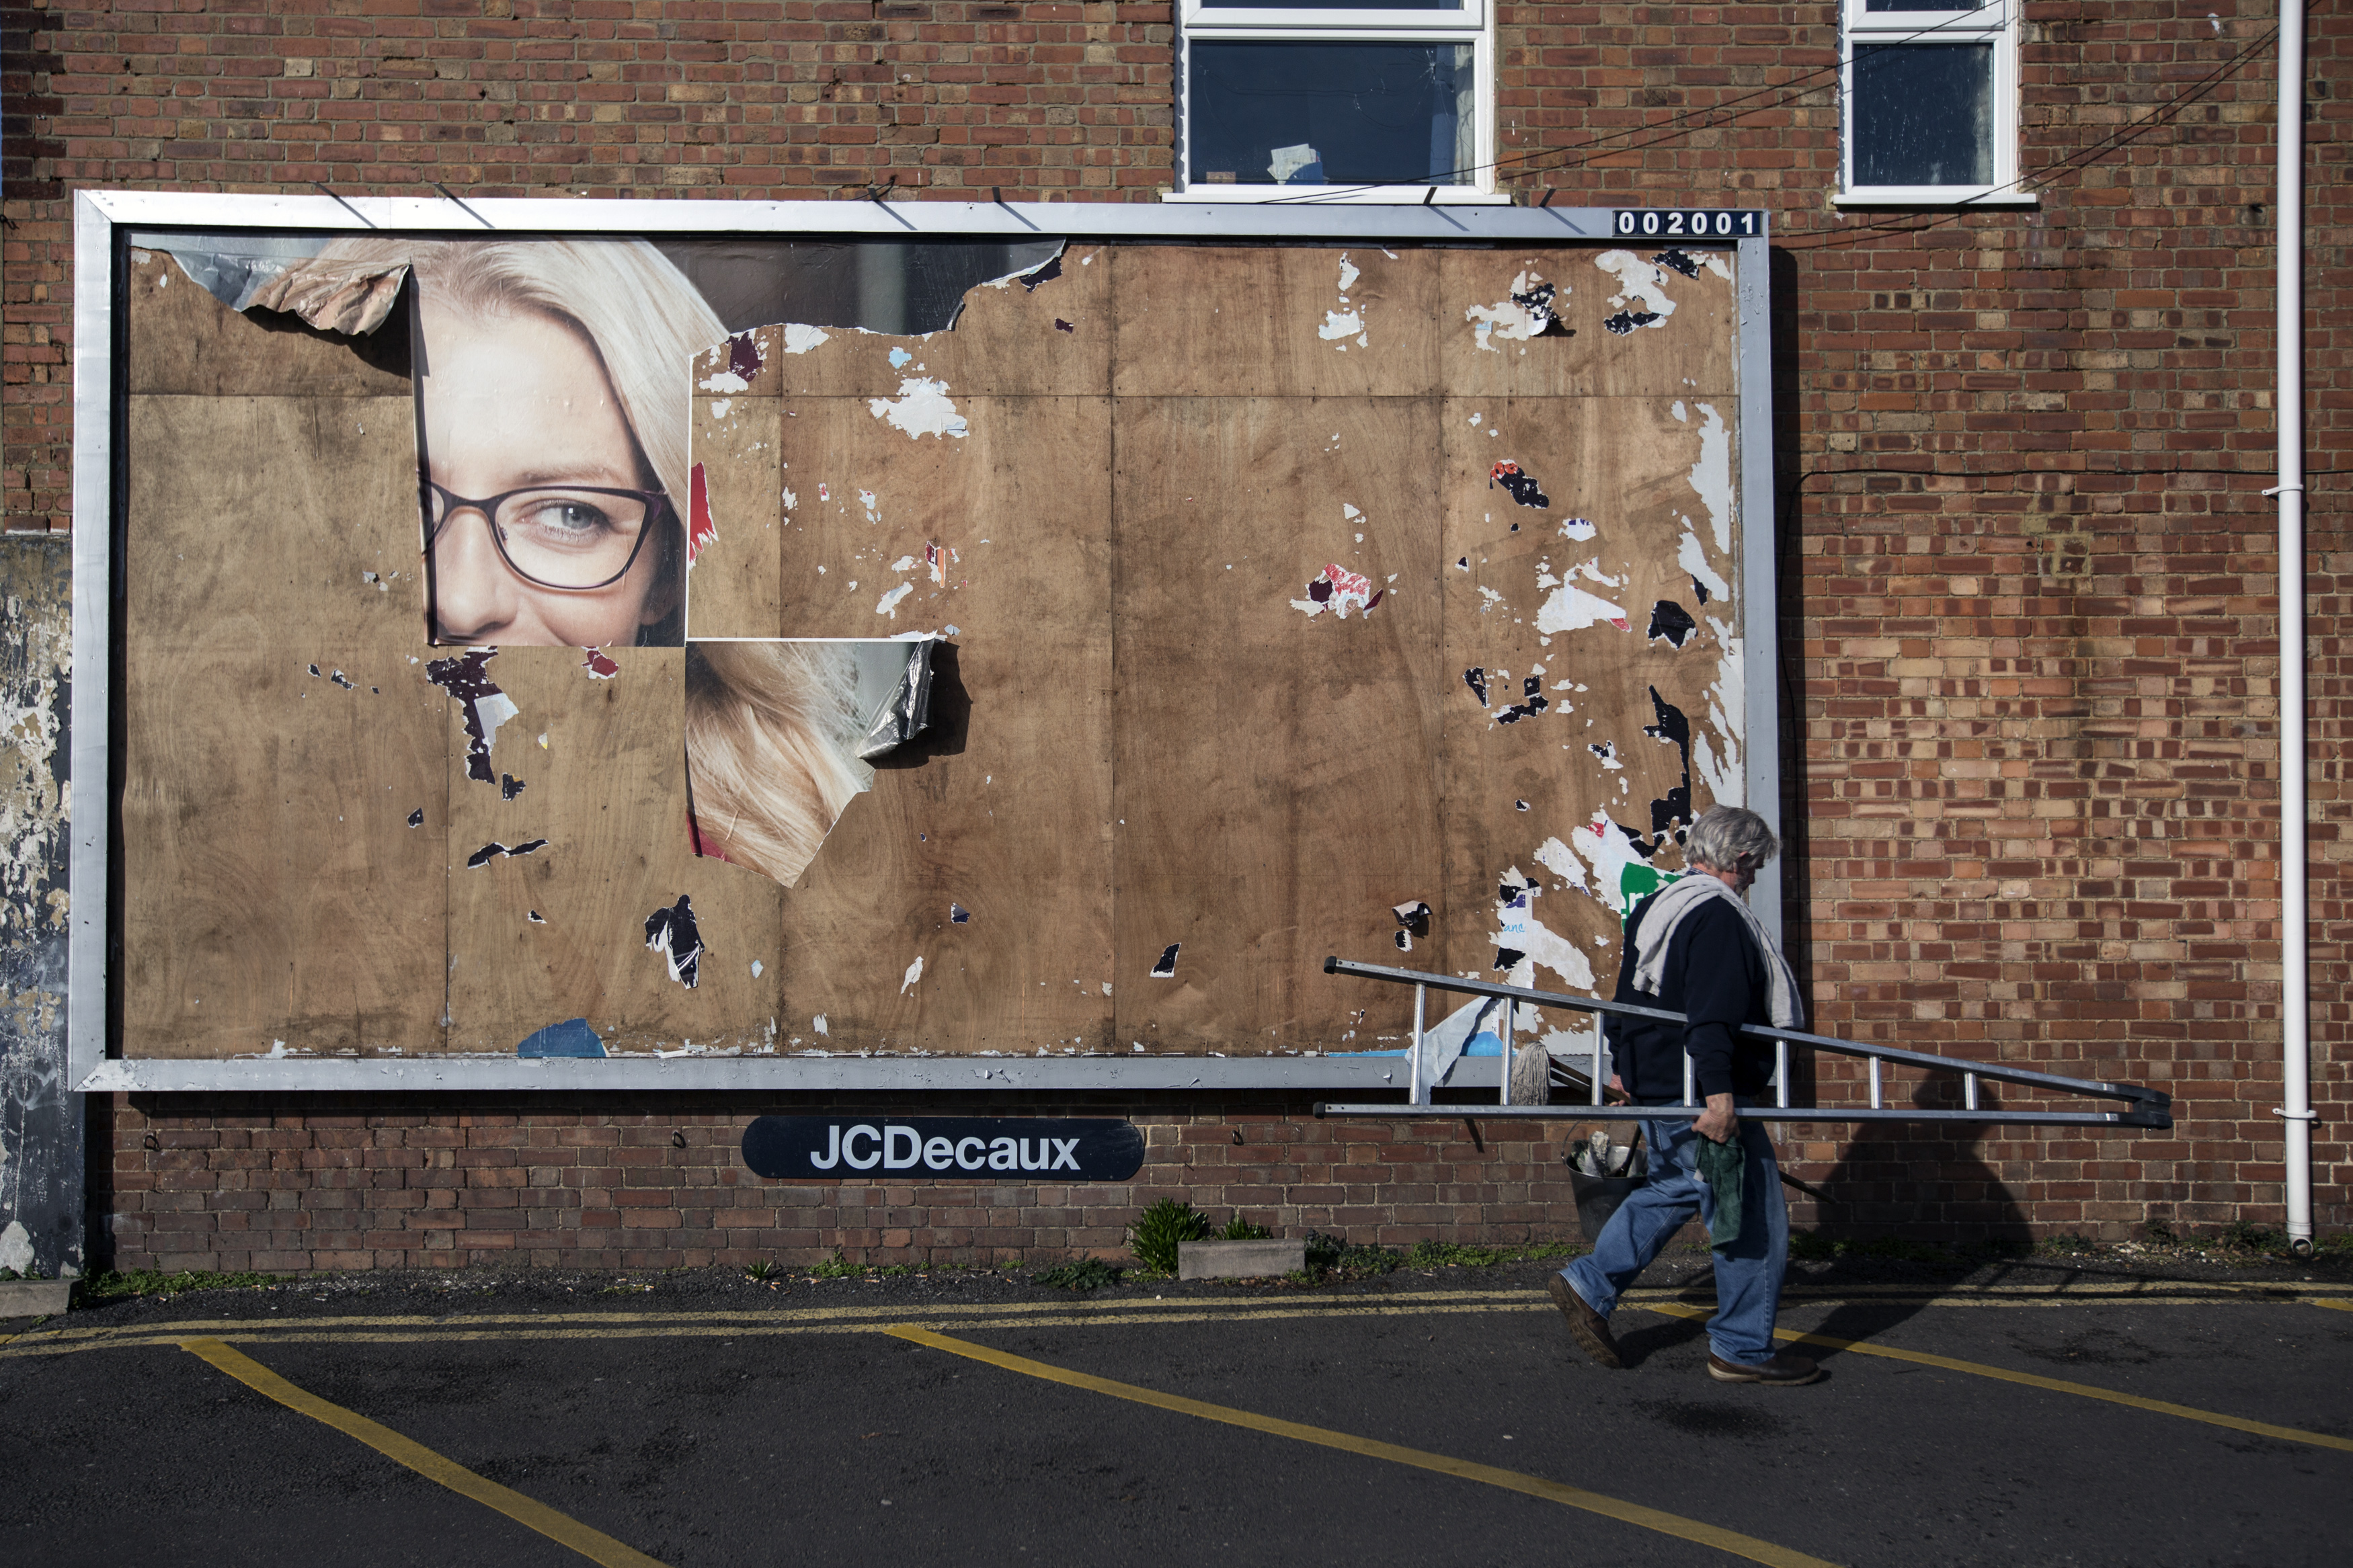 A Man Walks Past the Remains of an Old Billboard Advert